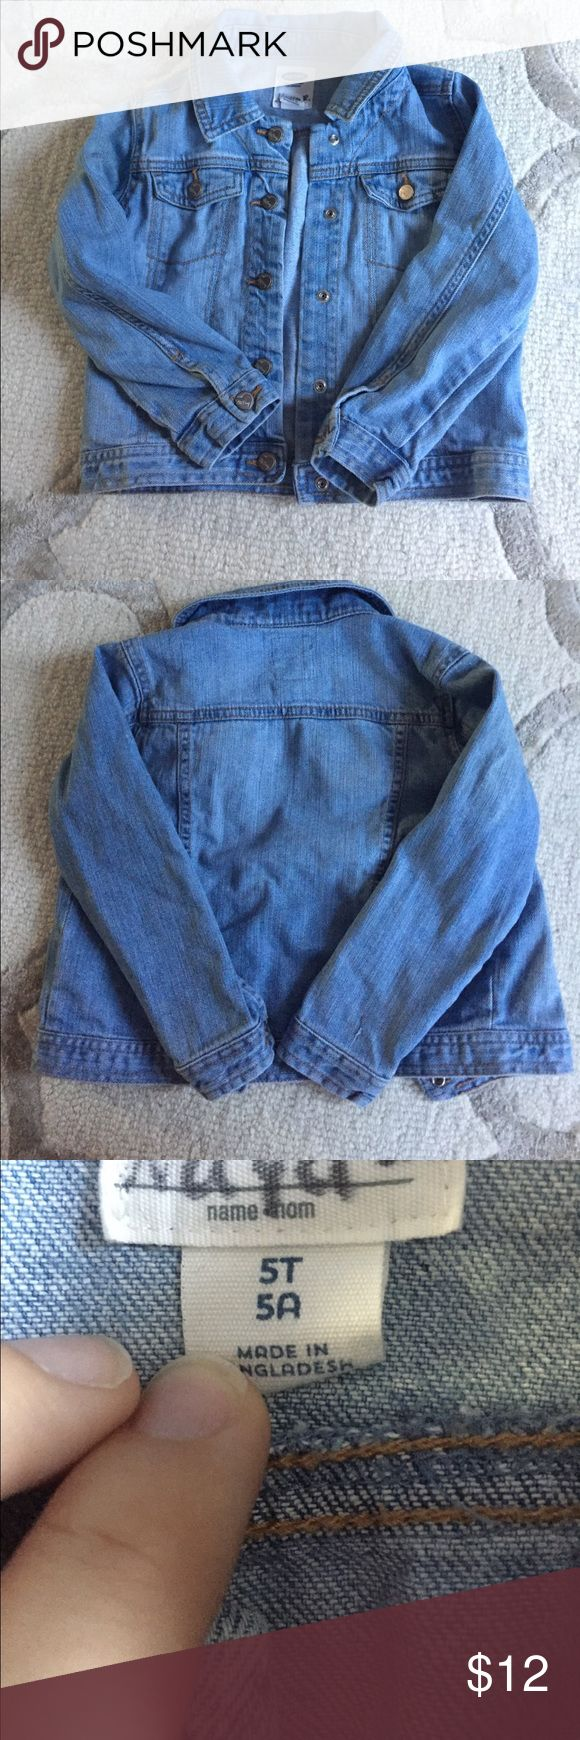 Old navy jean jacket Old Navy toddler size 5T light jean jacket. Does have my daughters name on tag no holes or stains. Old Navy Jackets & Coats Jean Jackets